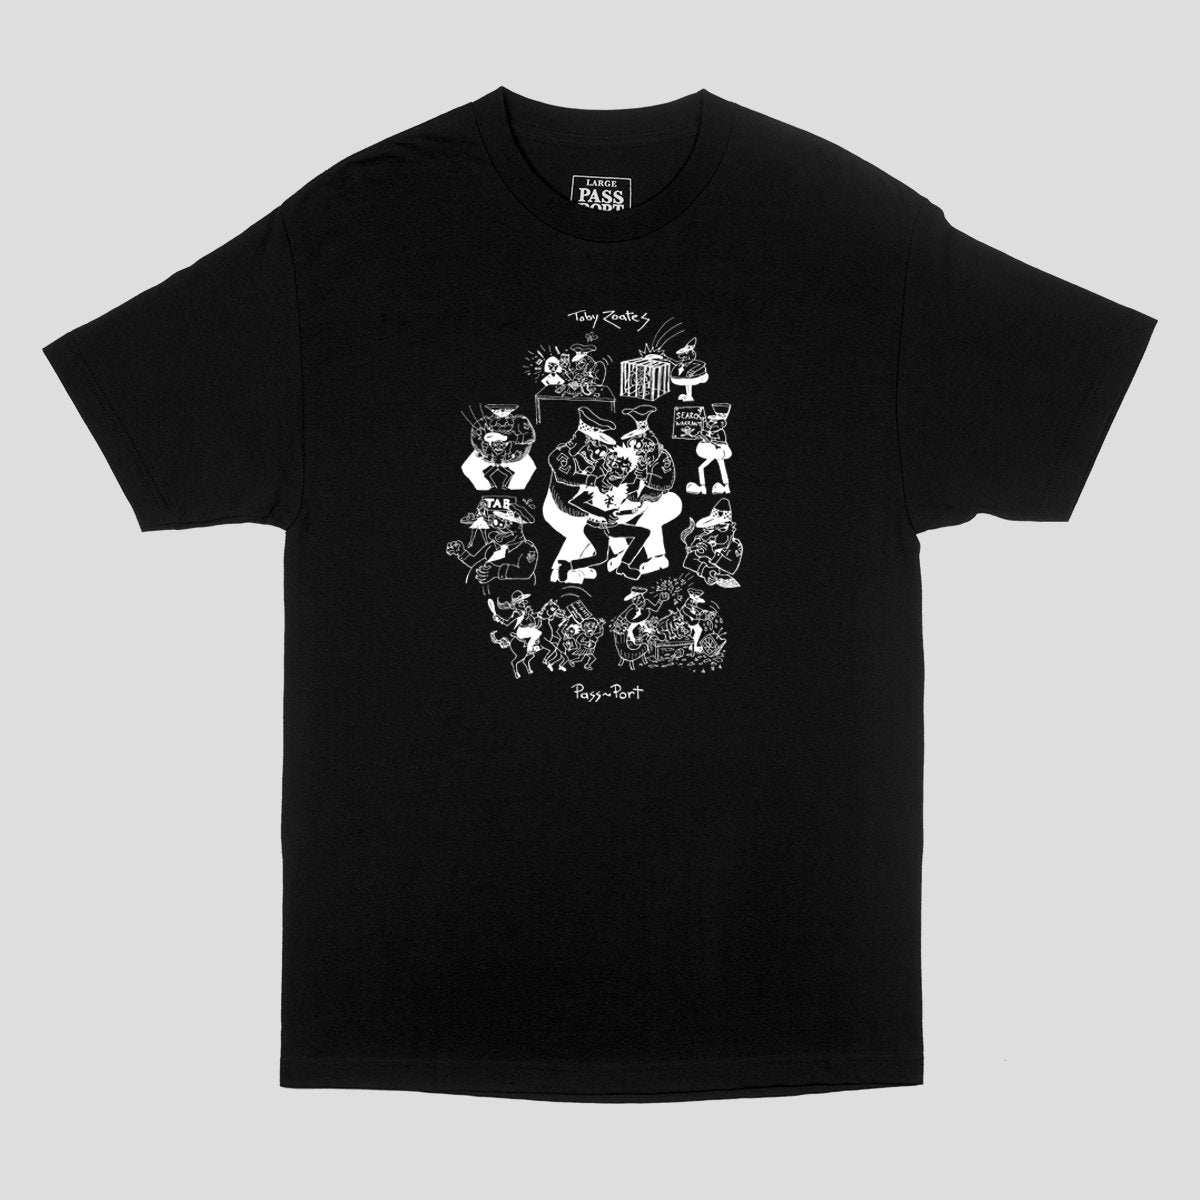 Toby Zoates Coppers Tee (Black)